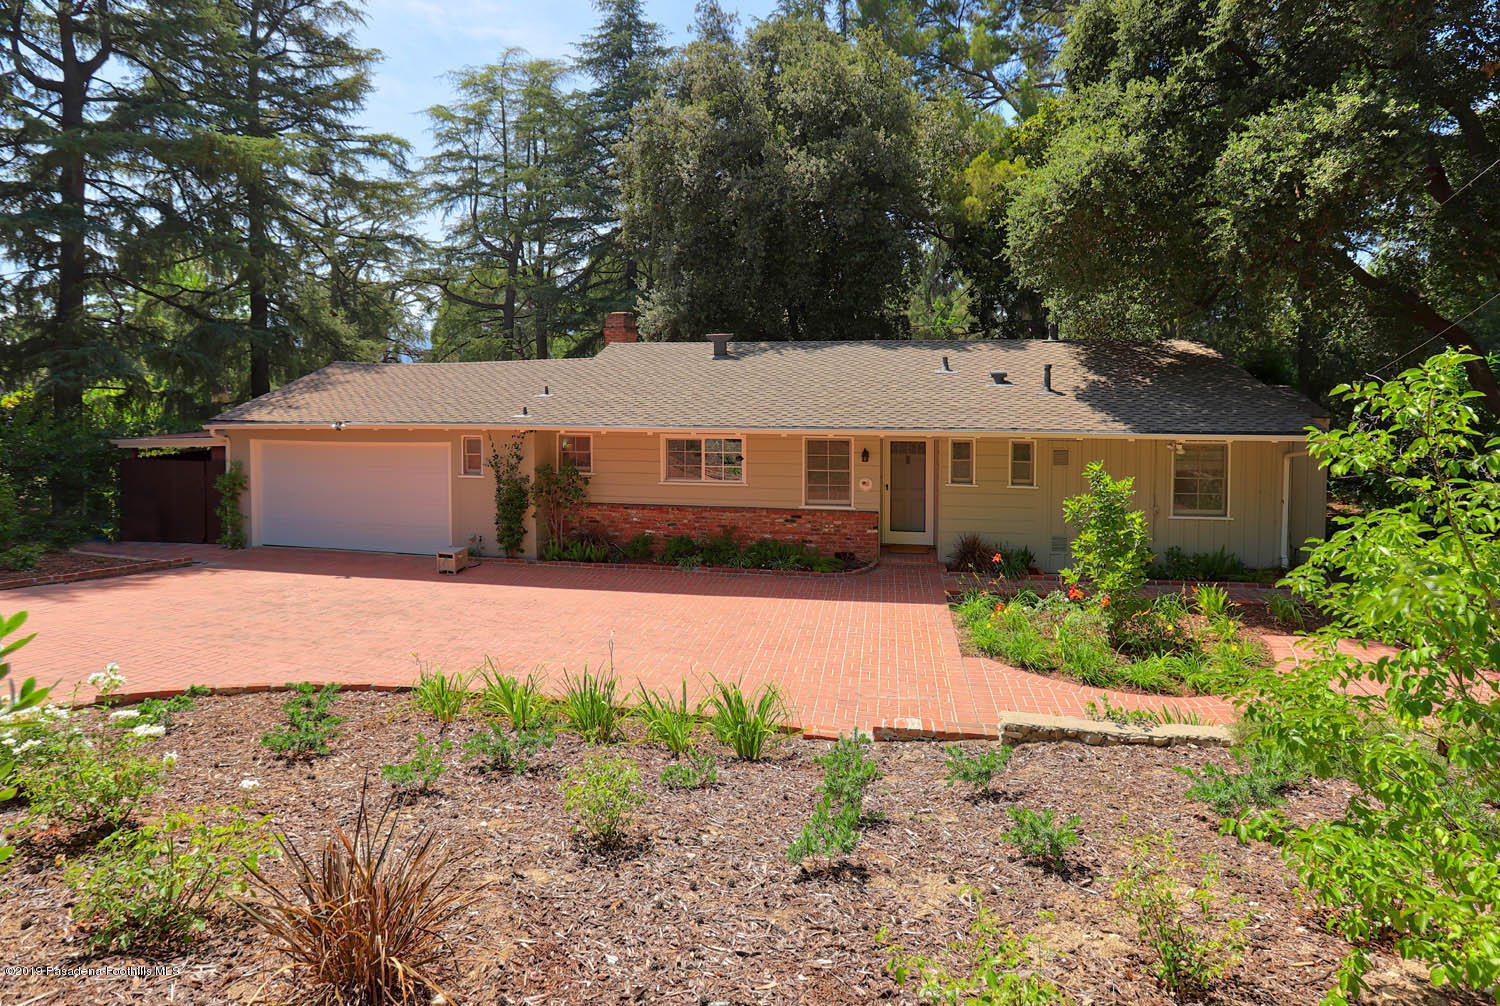 5311 Jessen Drive, La Canada Flintridge, California